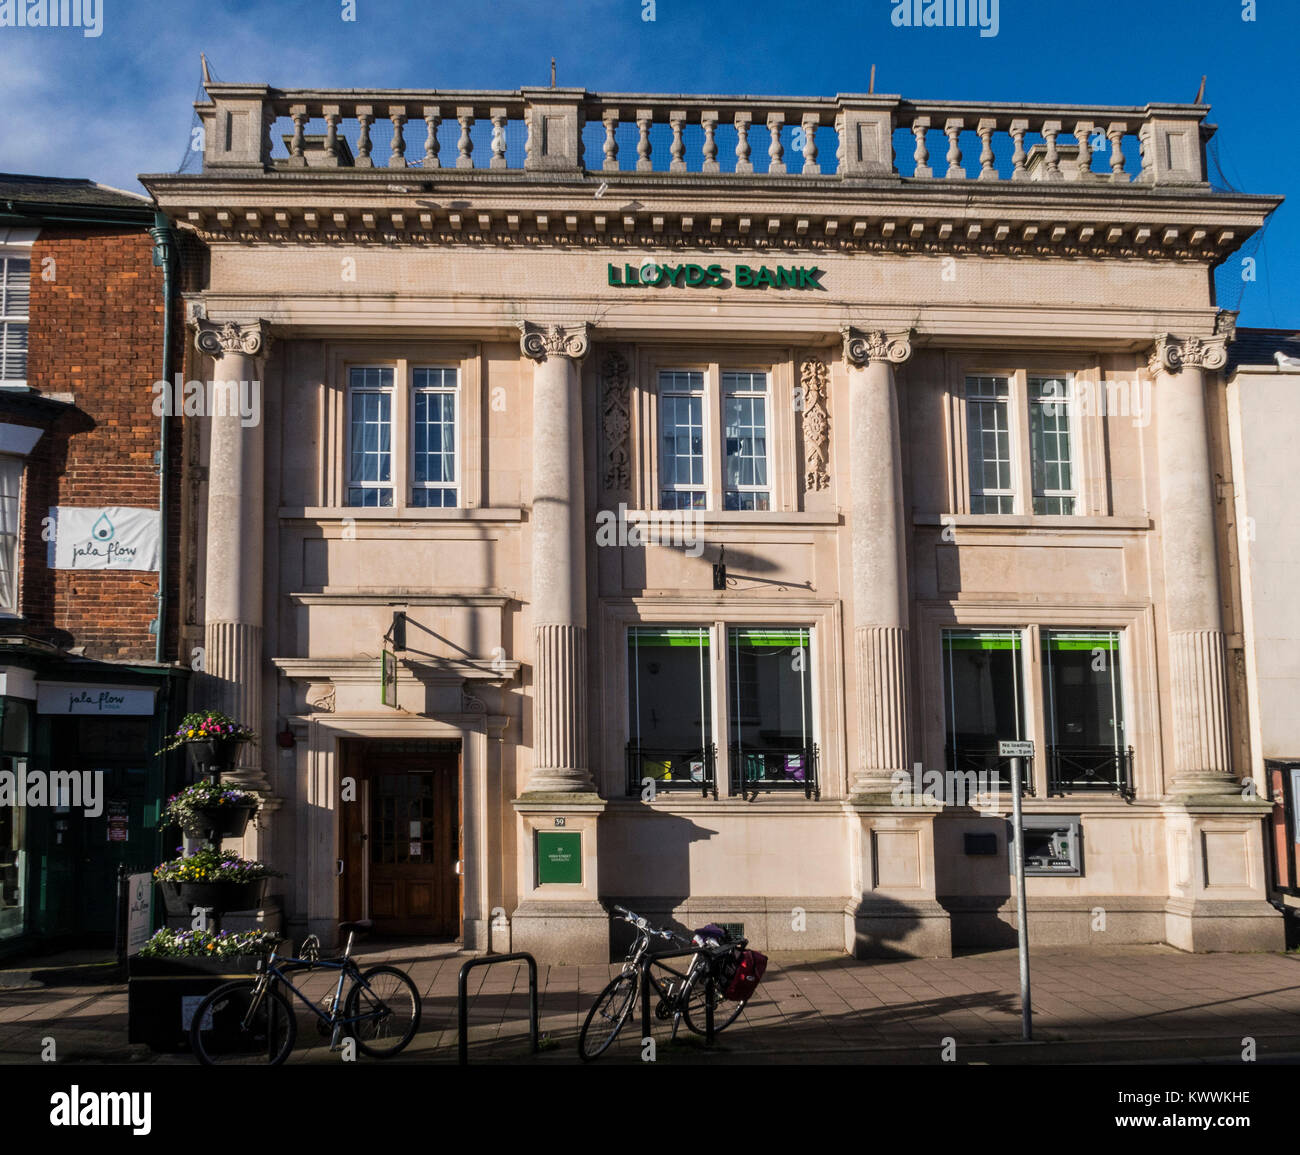 Lloyds bank exterior, High Street, Sidmouth, Devon, England, UK - Stock Image